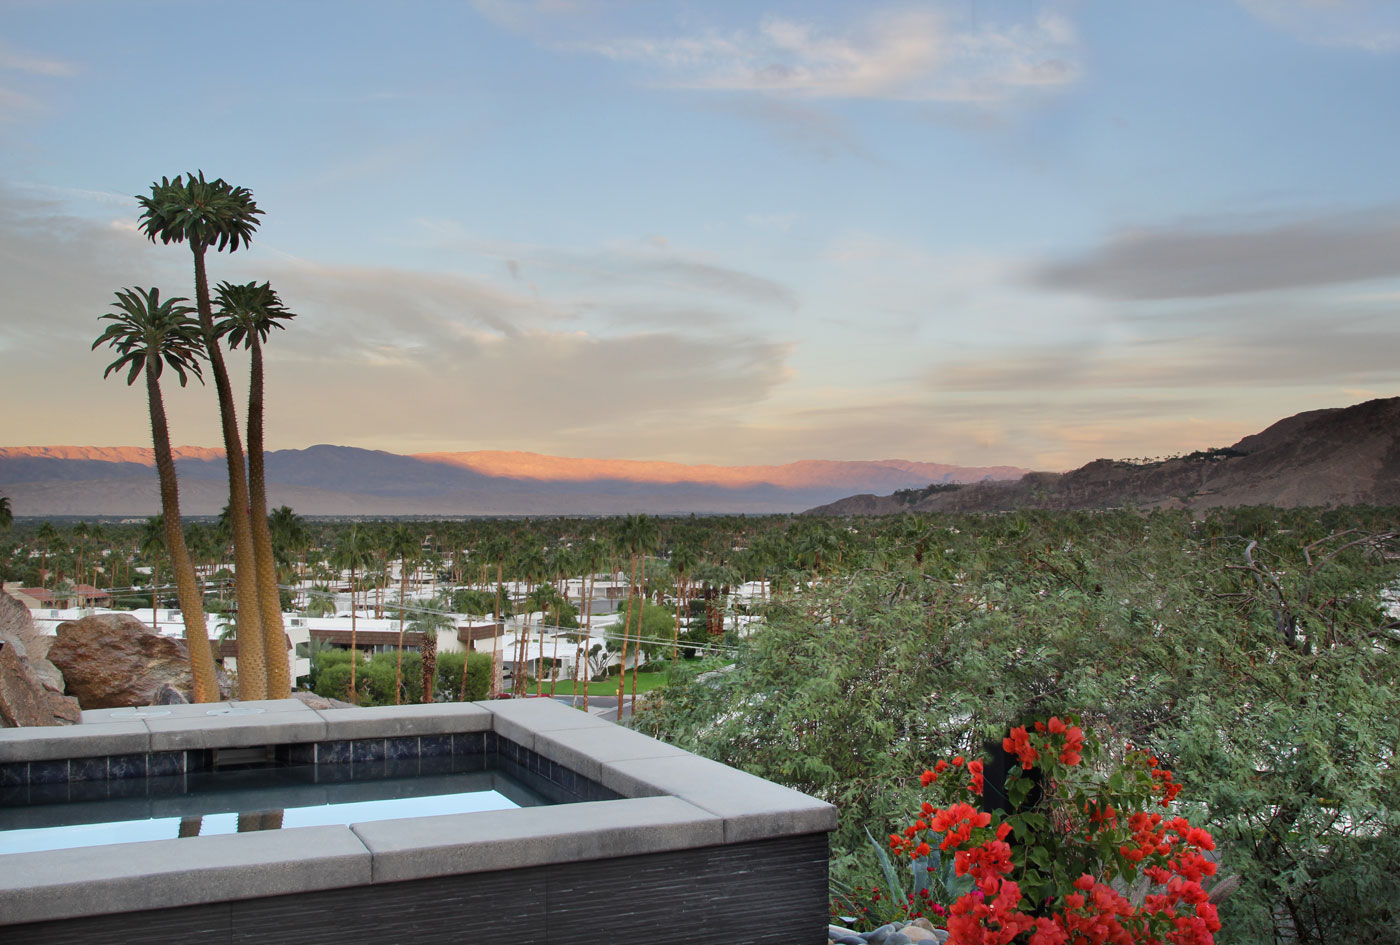 82 jacuzzi+perched+above+Palm+Springs+valley+with+unobstructed+view+of+mountain+ranges